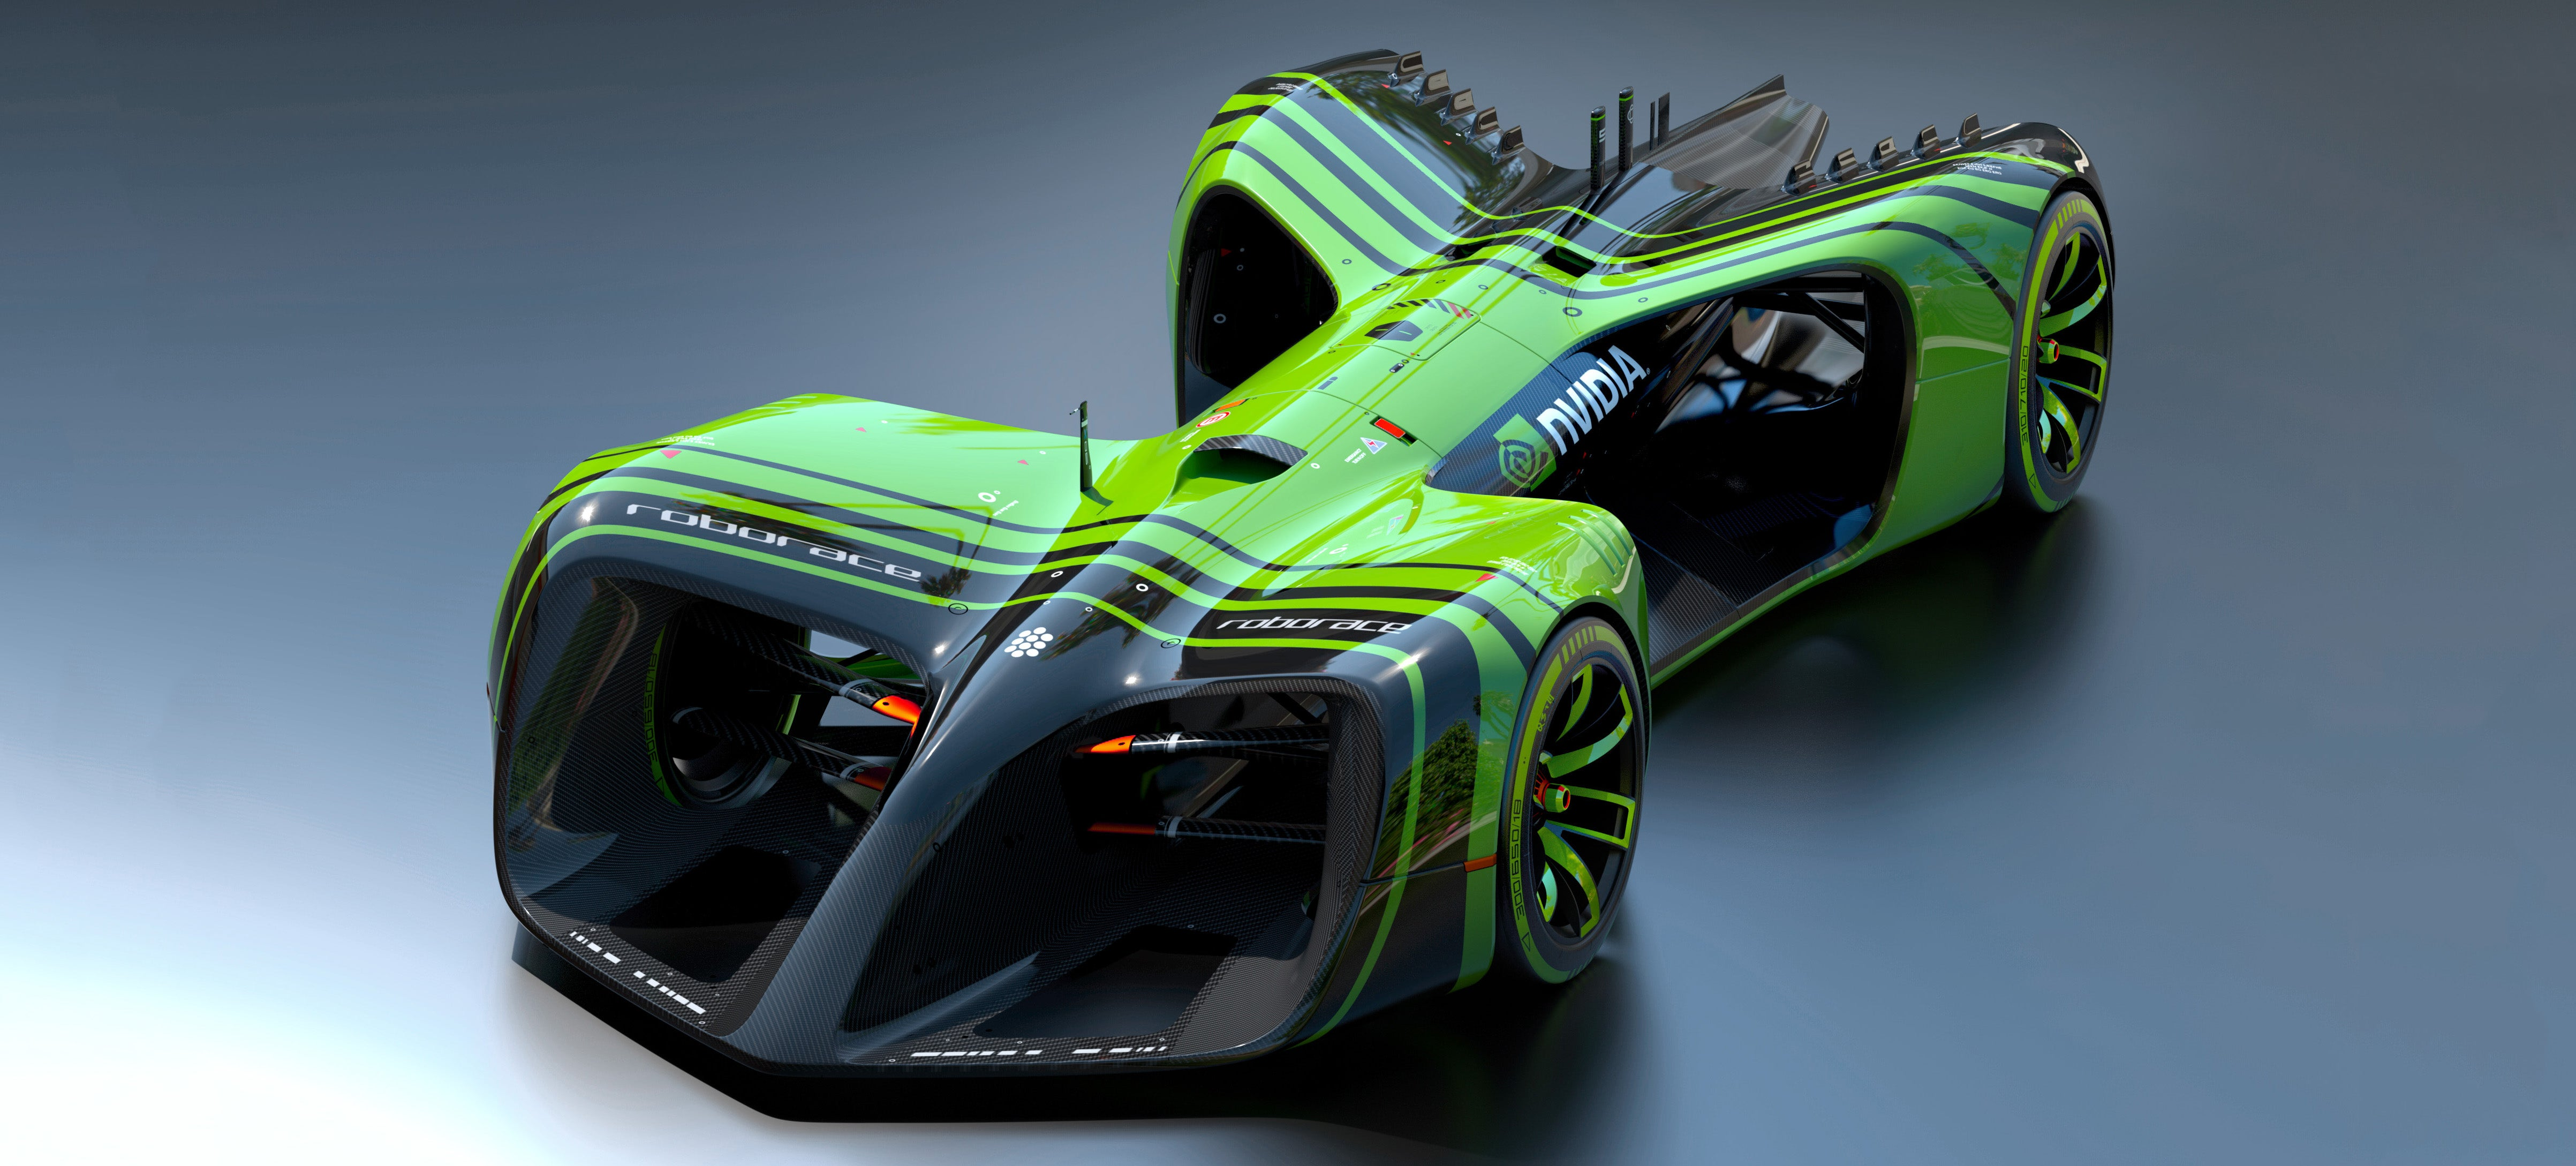 The Roborace Cars Will Use Nvidia Computers to Make 24 Trillion AI Operations a Second